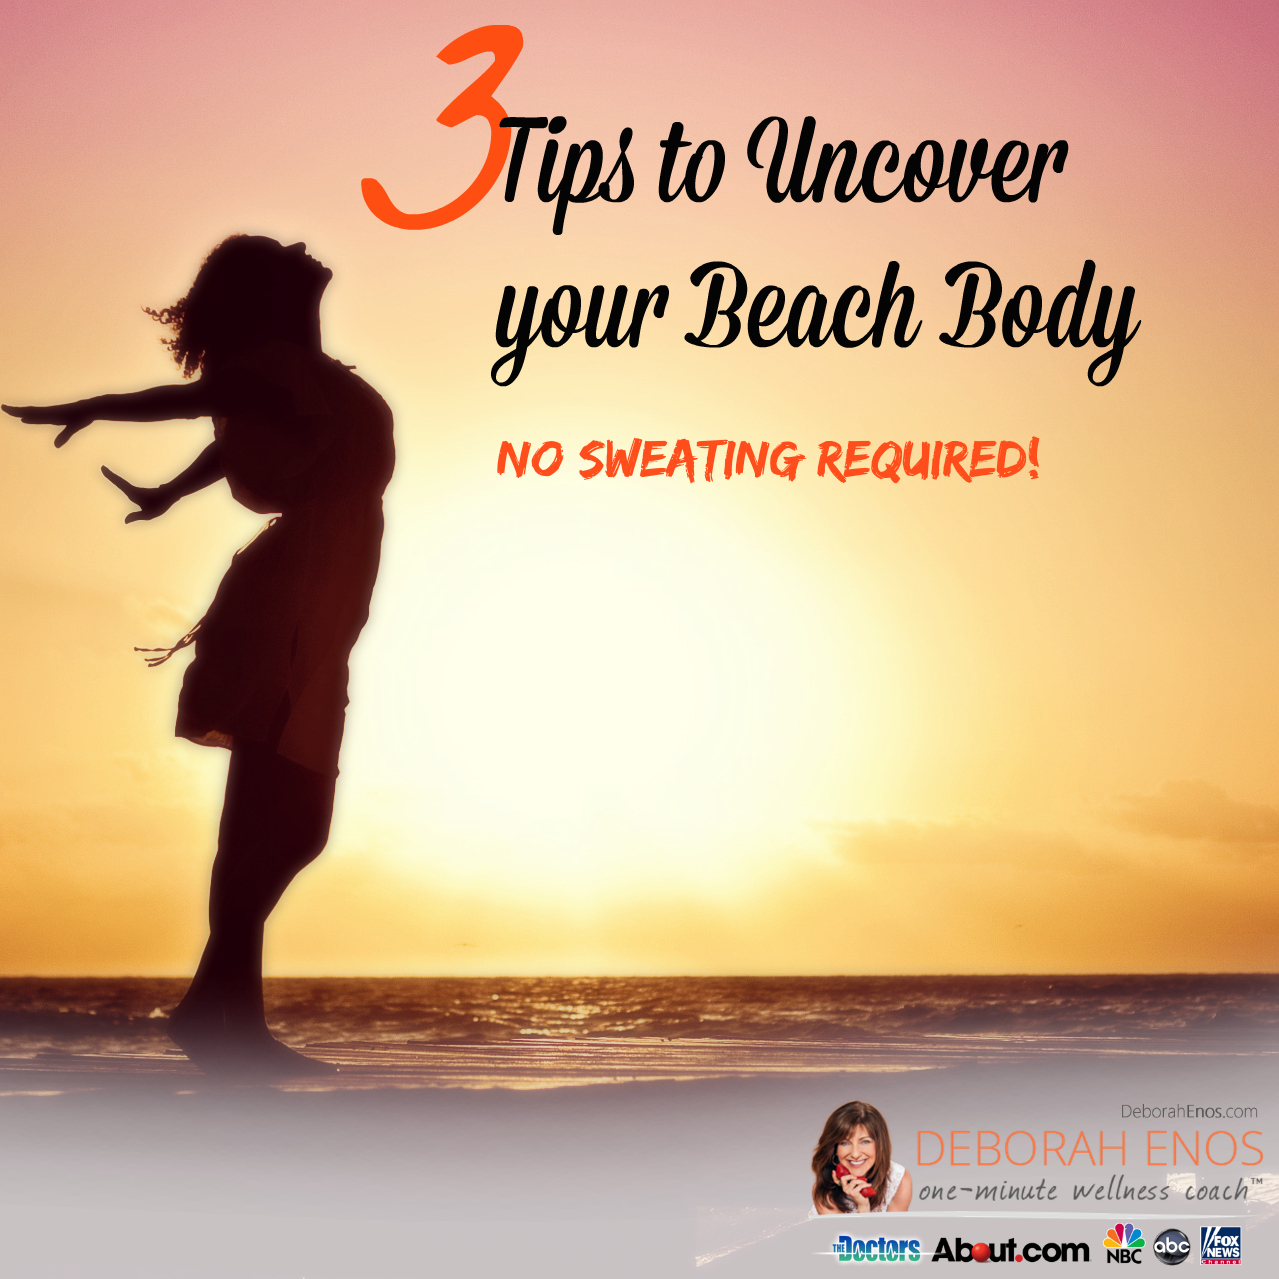 3 Tips to Uncover your Beach Body - No Sweating Required!